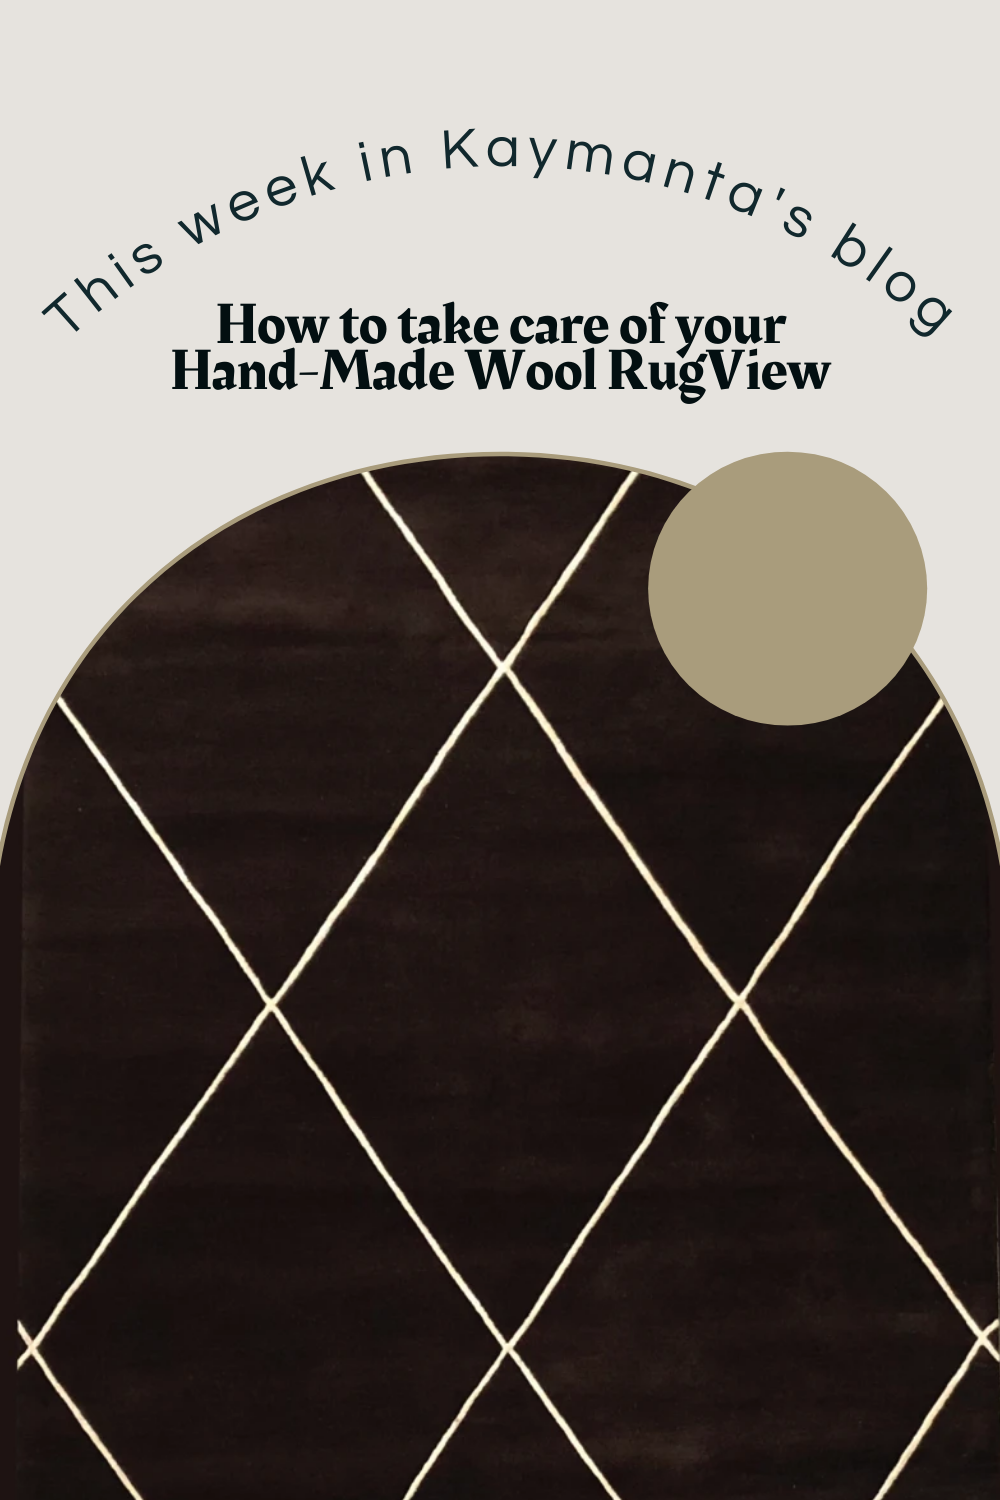 How to take care of your Hand-Made Wool Rug